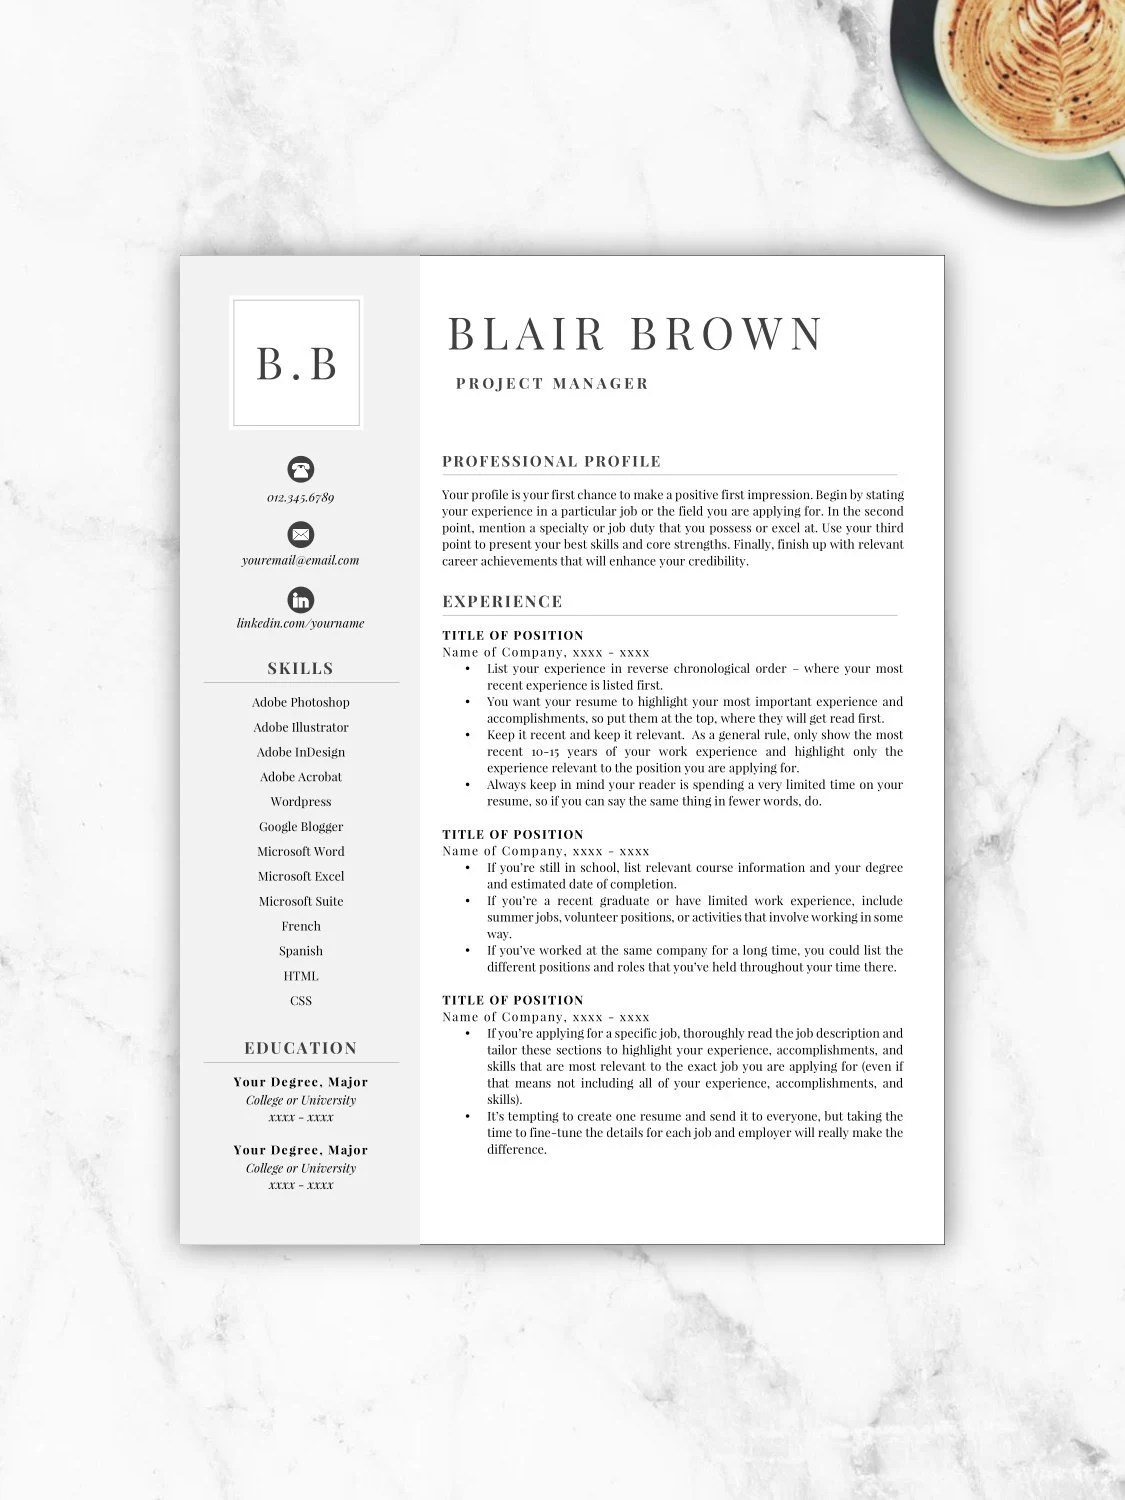 Resume Templates For Word Free Professional Resume Template Free Resume Template Resume Template Instant Download Resumes Cover Letter References Included Mac Pc